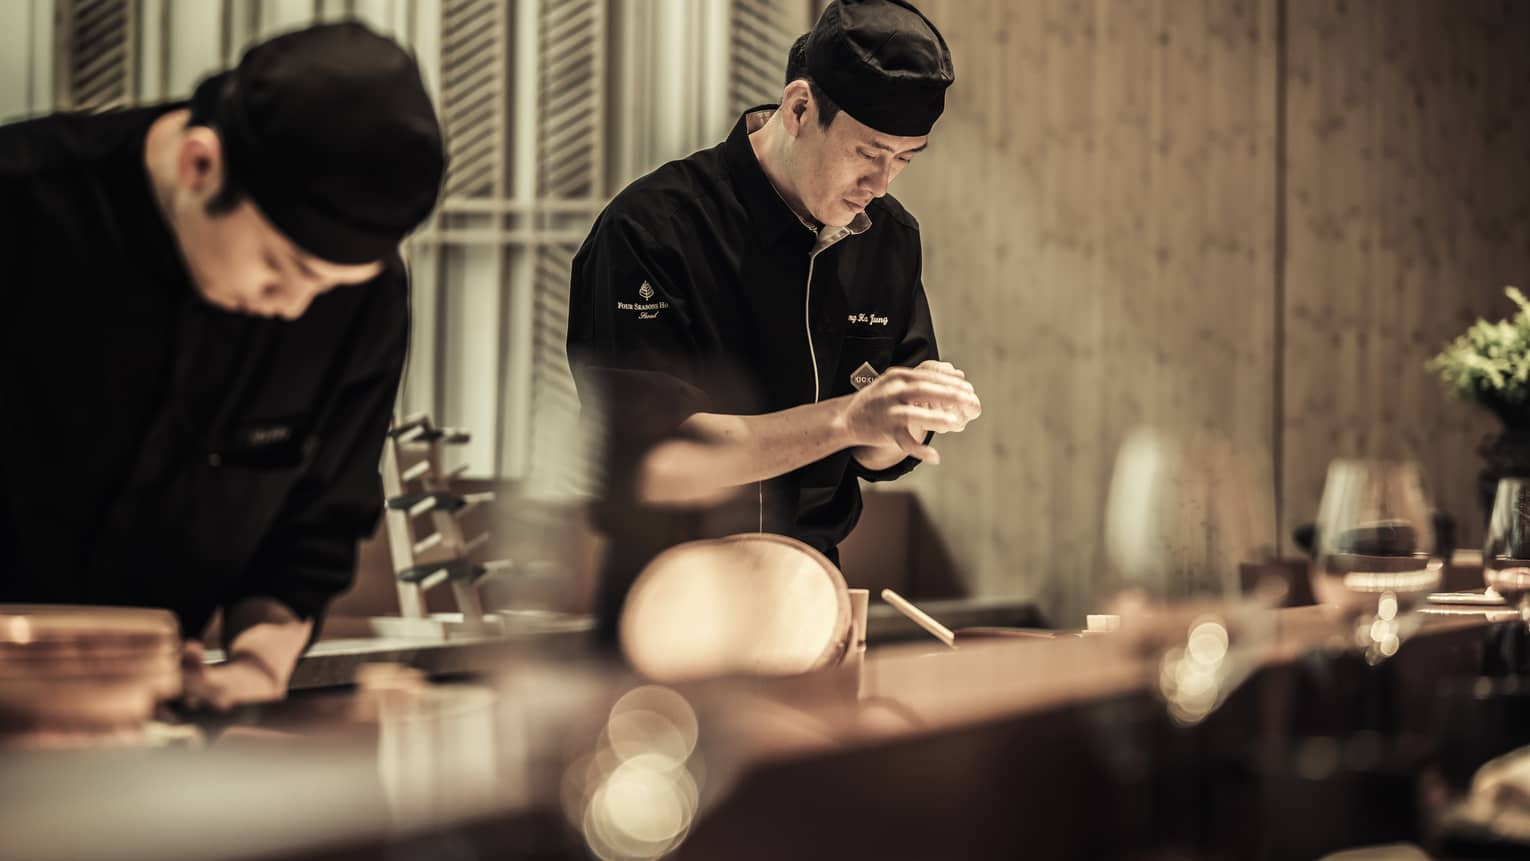 Chefs wearing black uniforms prepare dishes at Kioki sushi bar